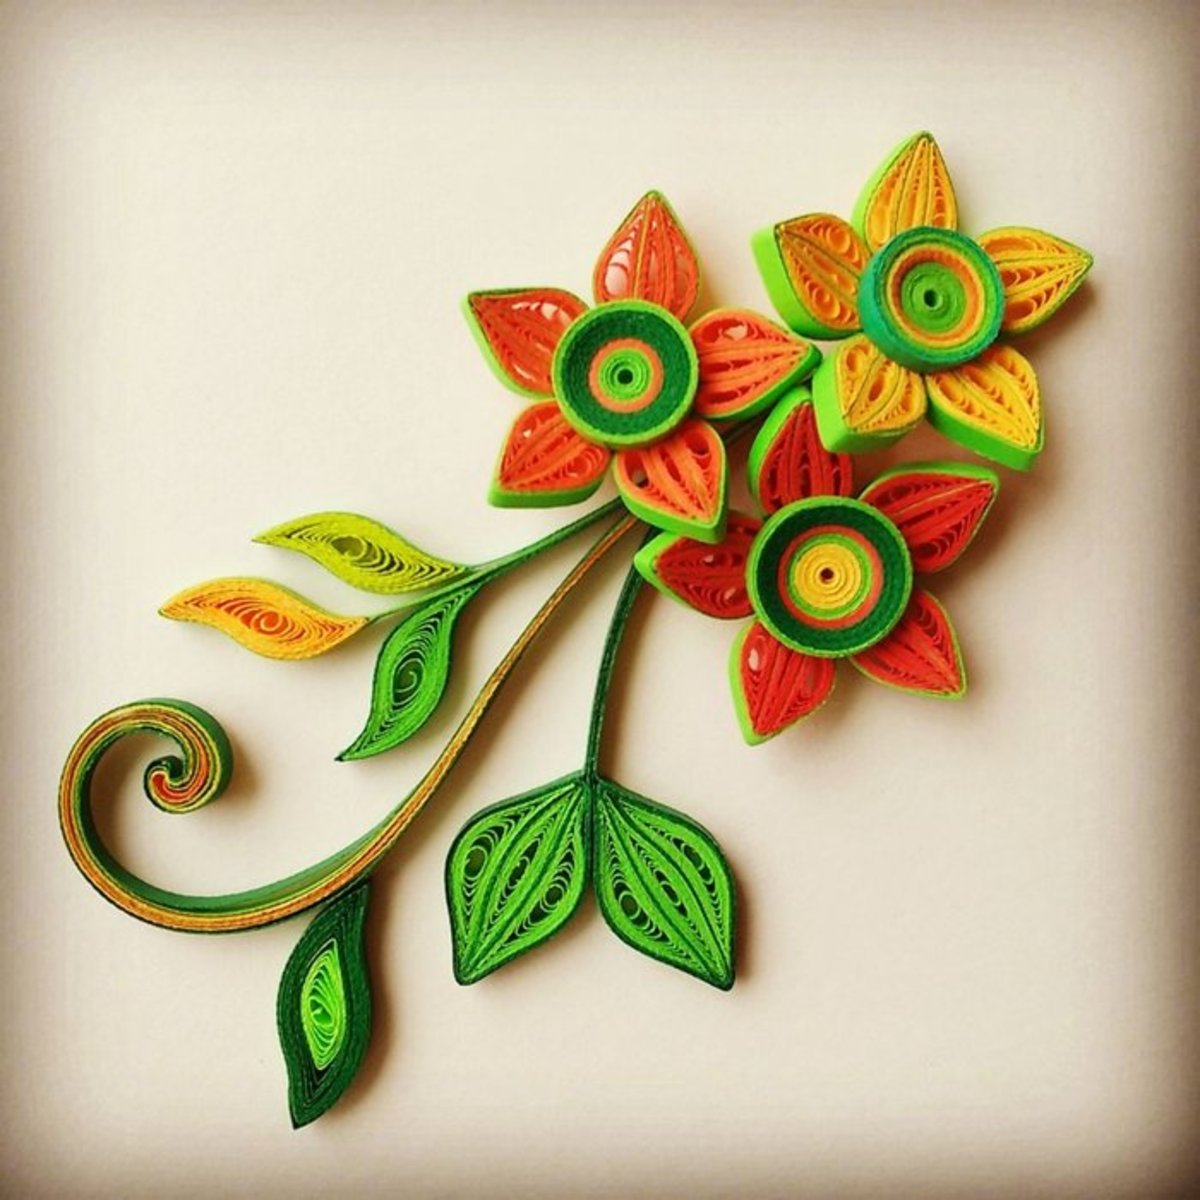 Gorgeous 3D Quilled Flowers and Leaves From Scratch! : Learn to make these gorgeous and colorful flowers and leaves today, from scratch! I'll also show you how and where you can use em in different projects :)